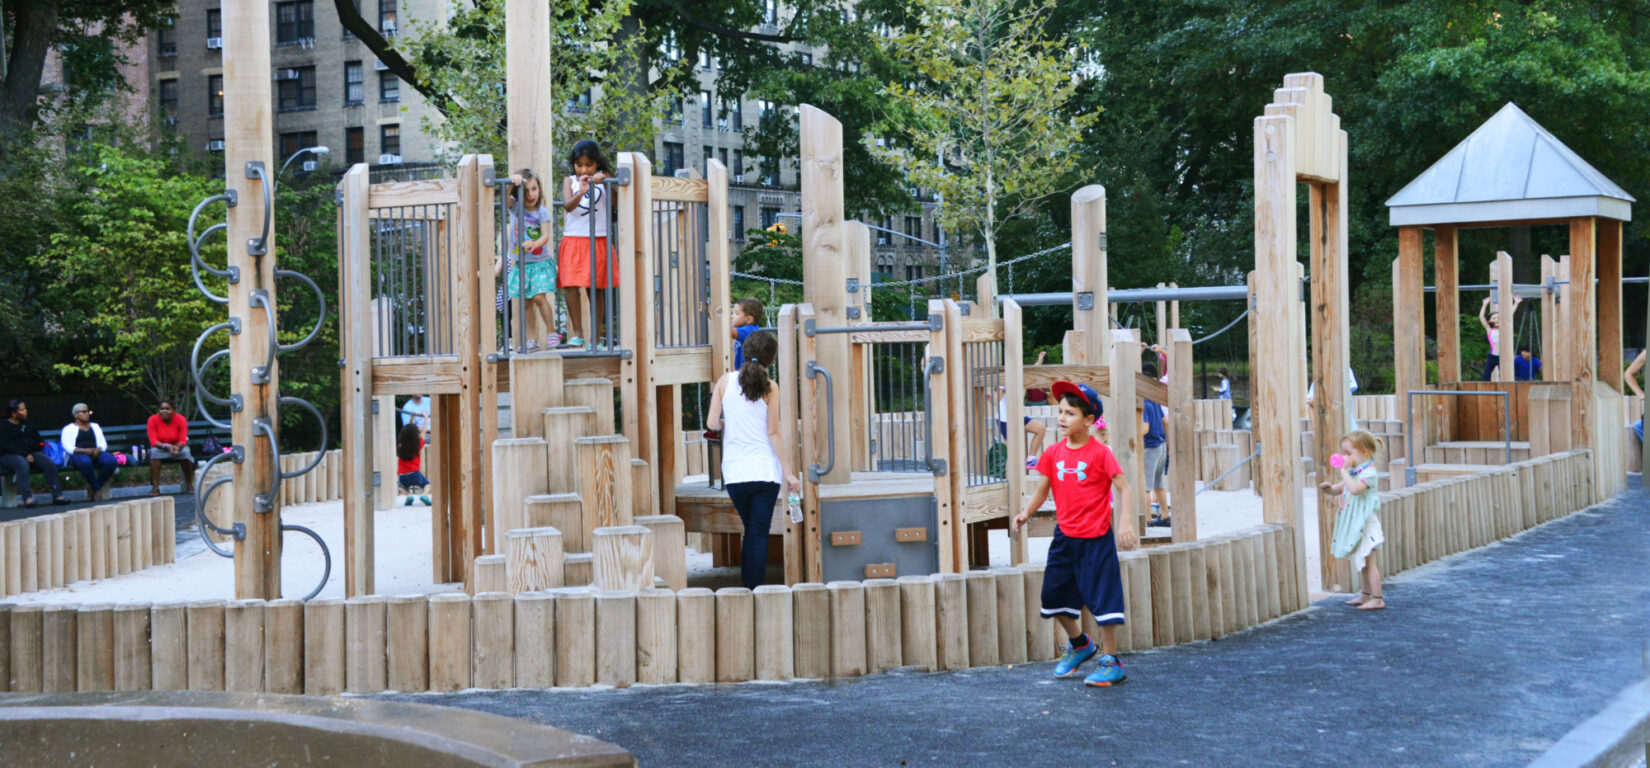 Wooden play structures surround sandy ground, surrounded by a path.